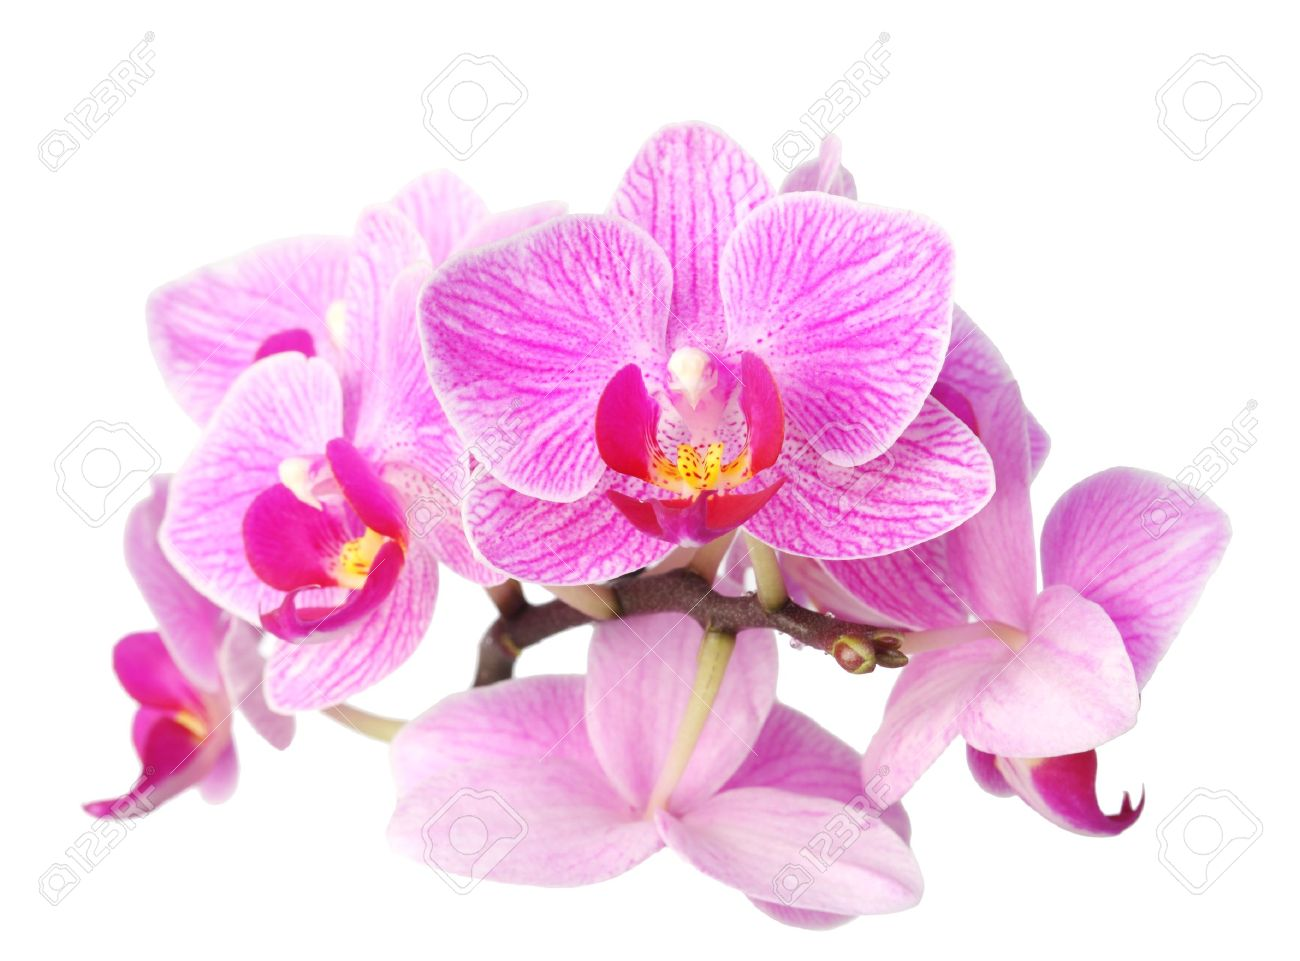 Closeup Image Of Purple Orchid Flower On White Background Stock